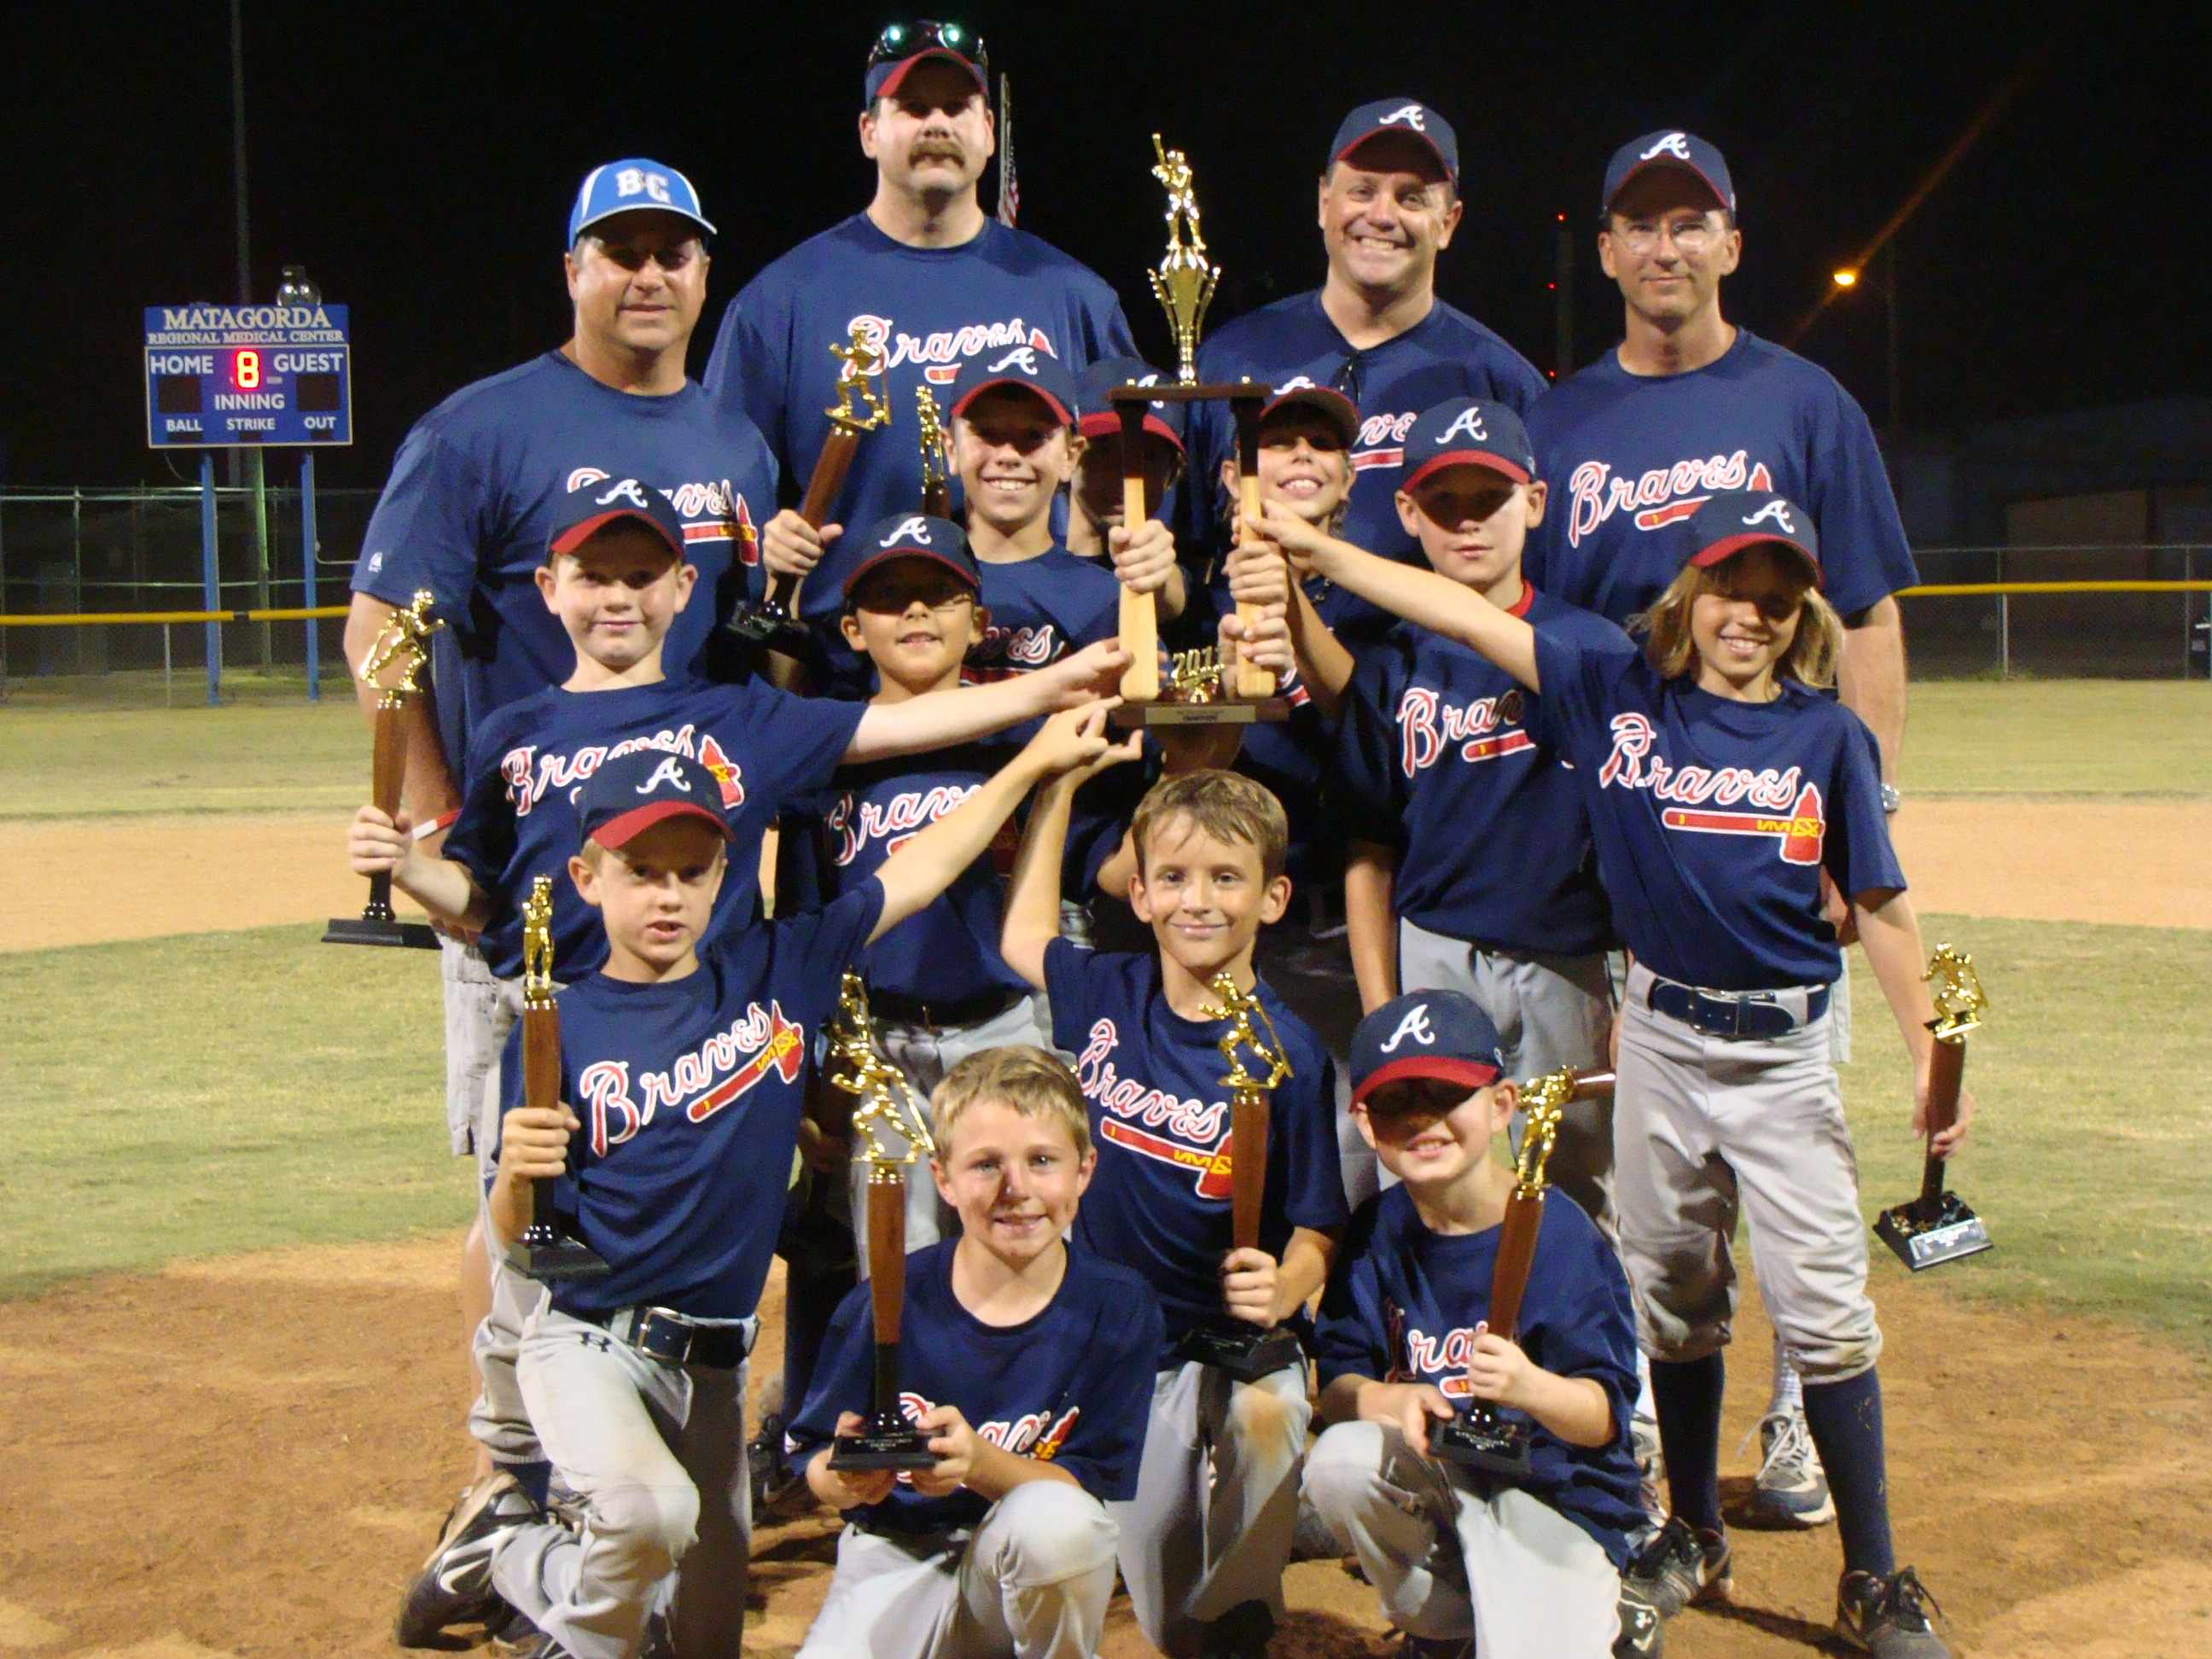 2011 Minor League Champions - Braves